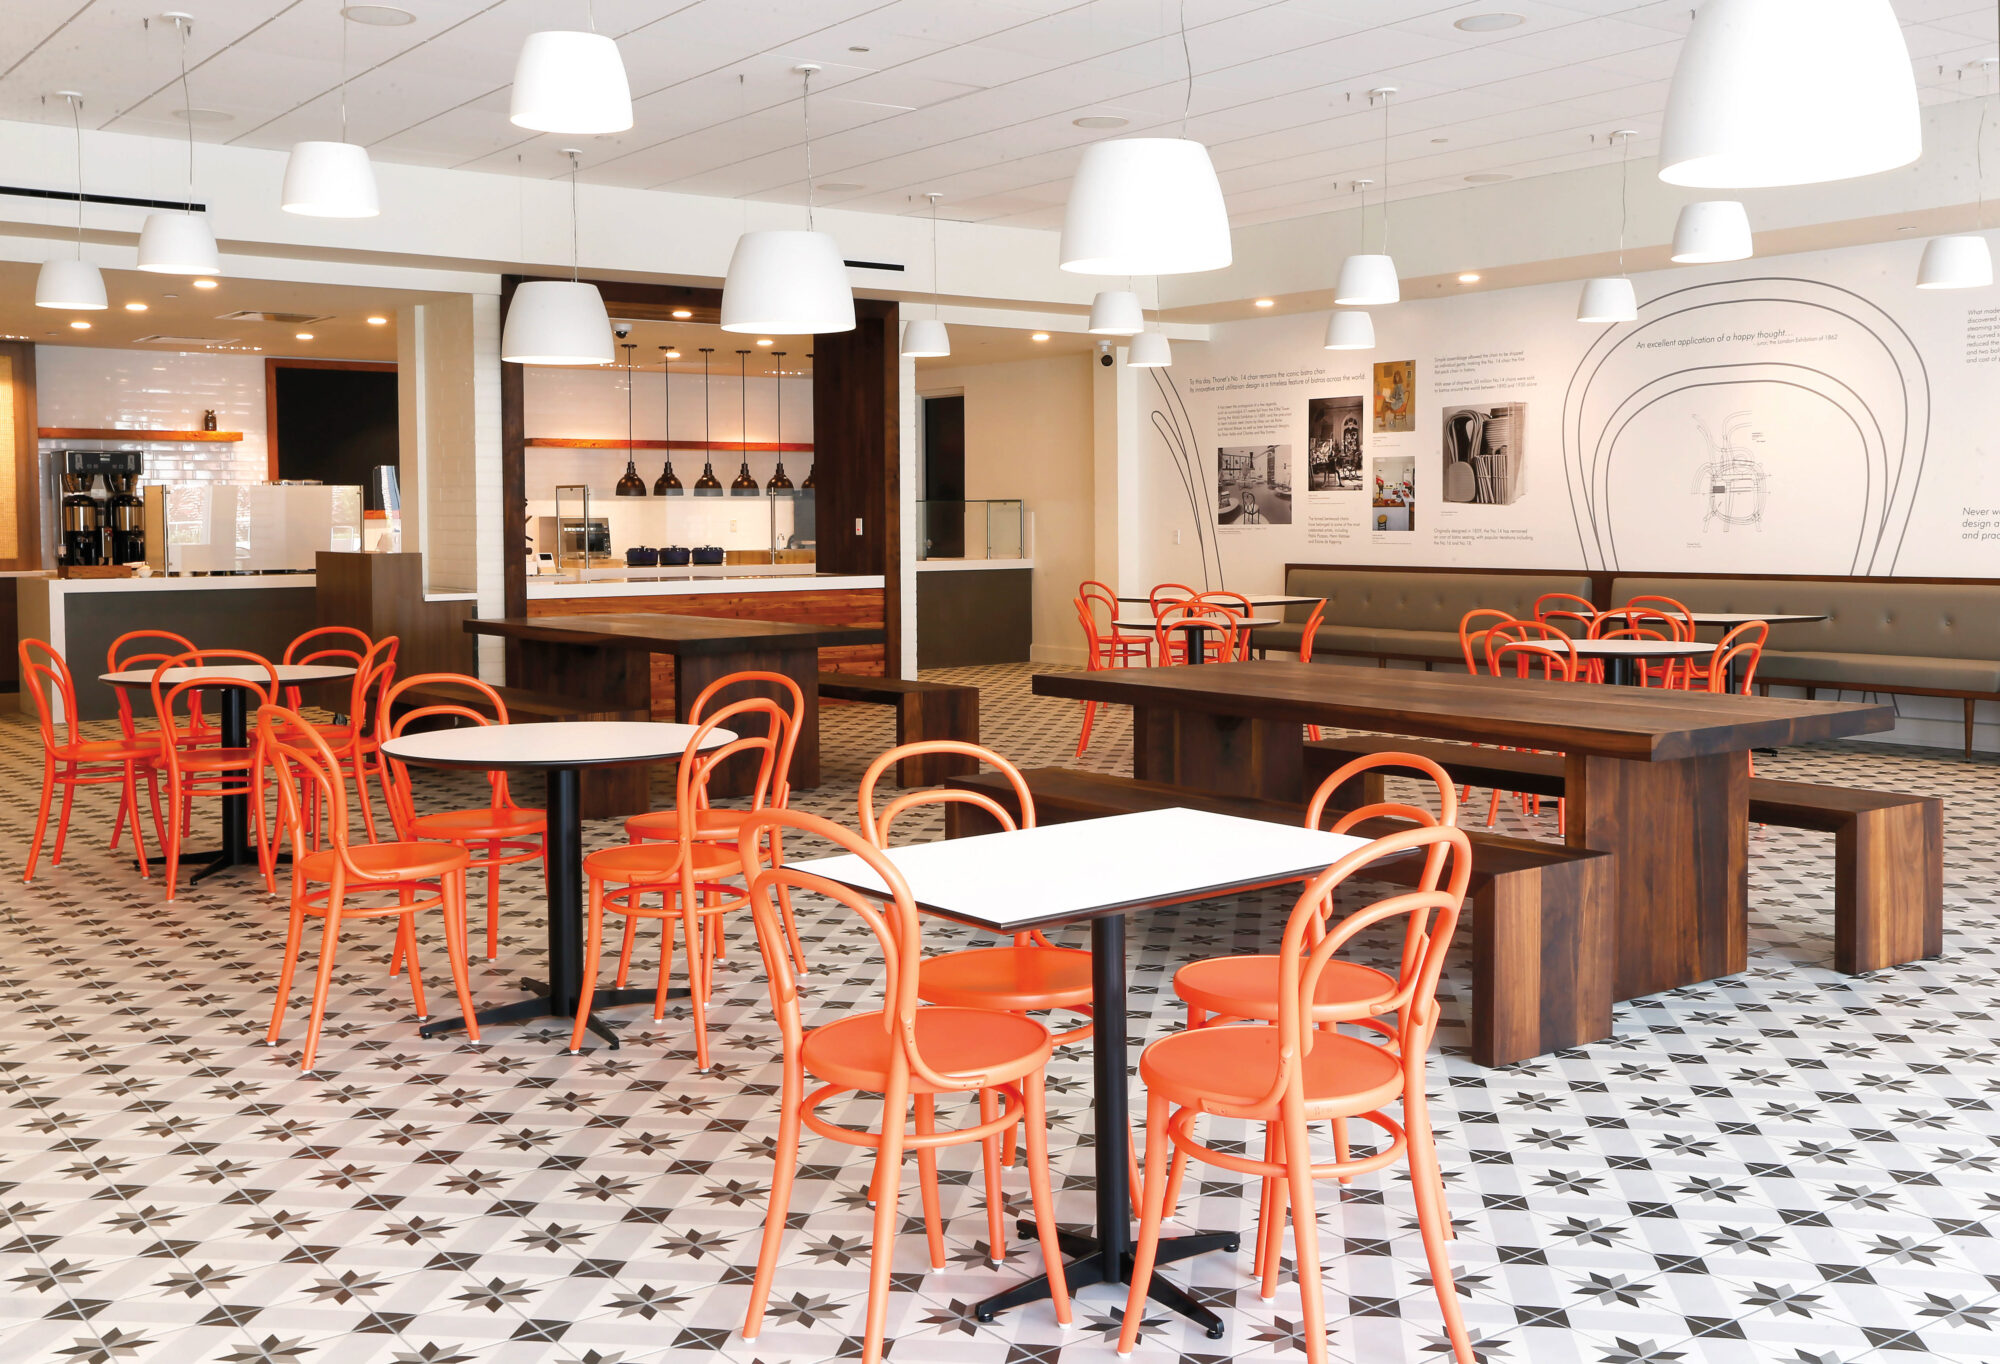 Eatery with orange chairs and wood tables